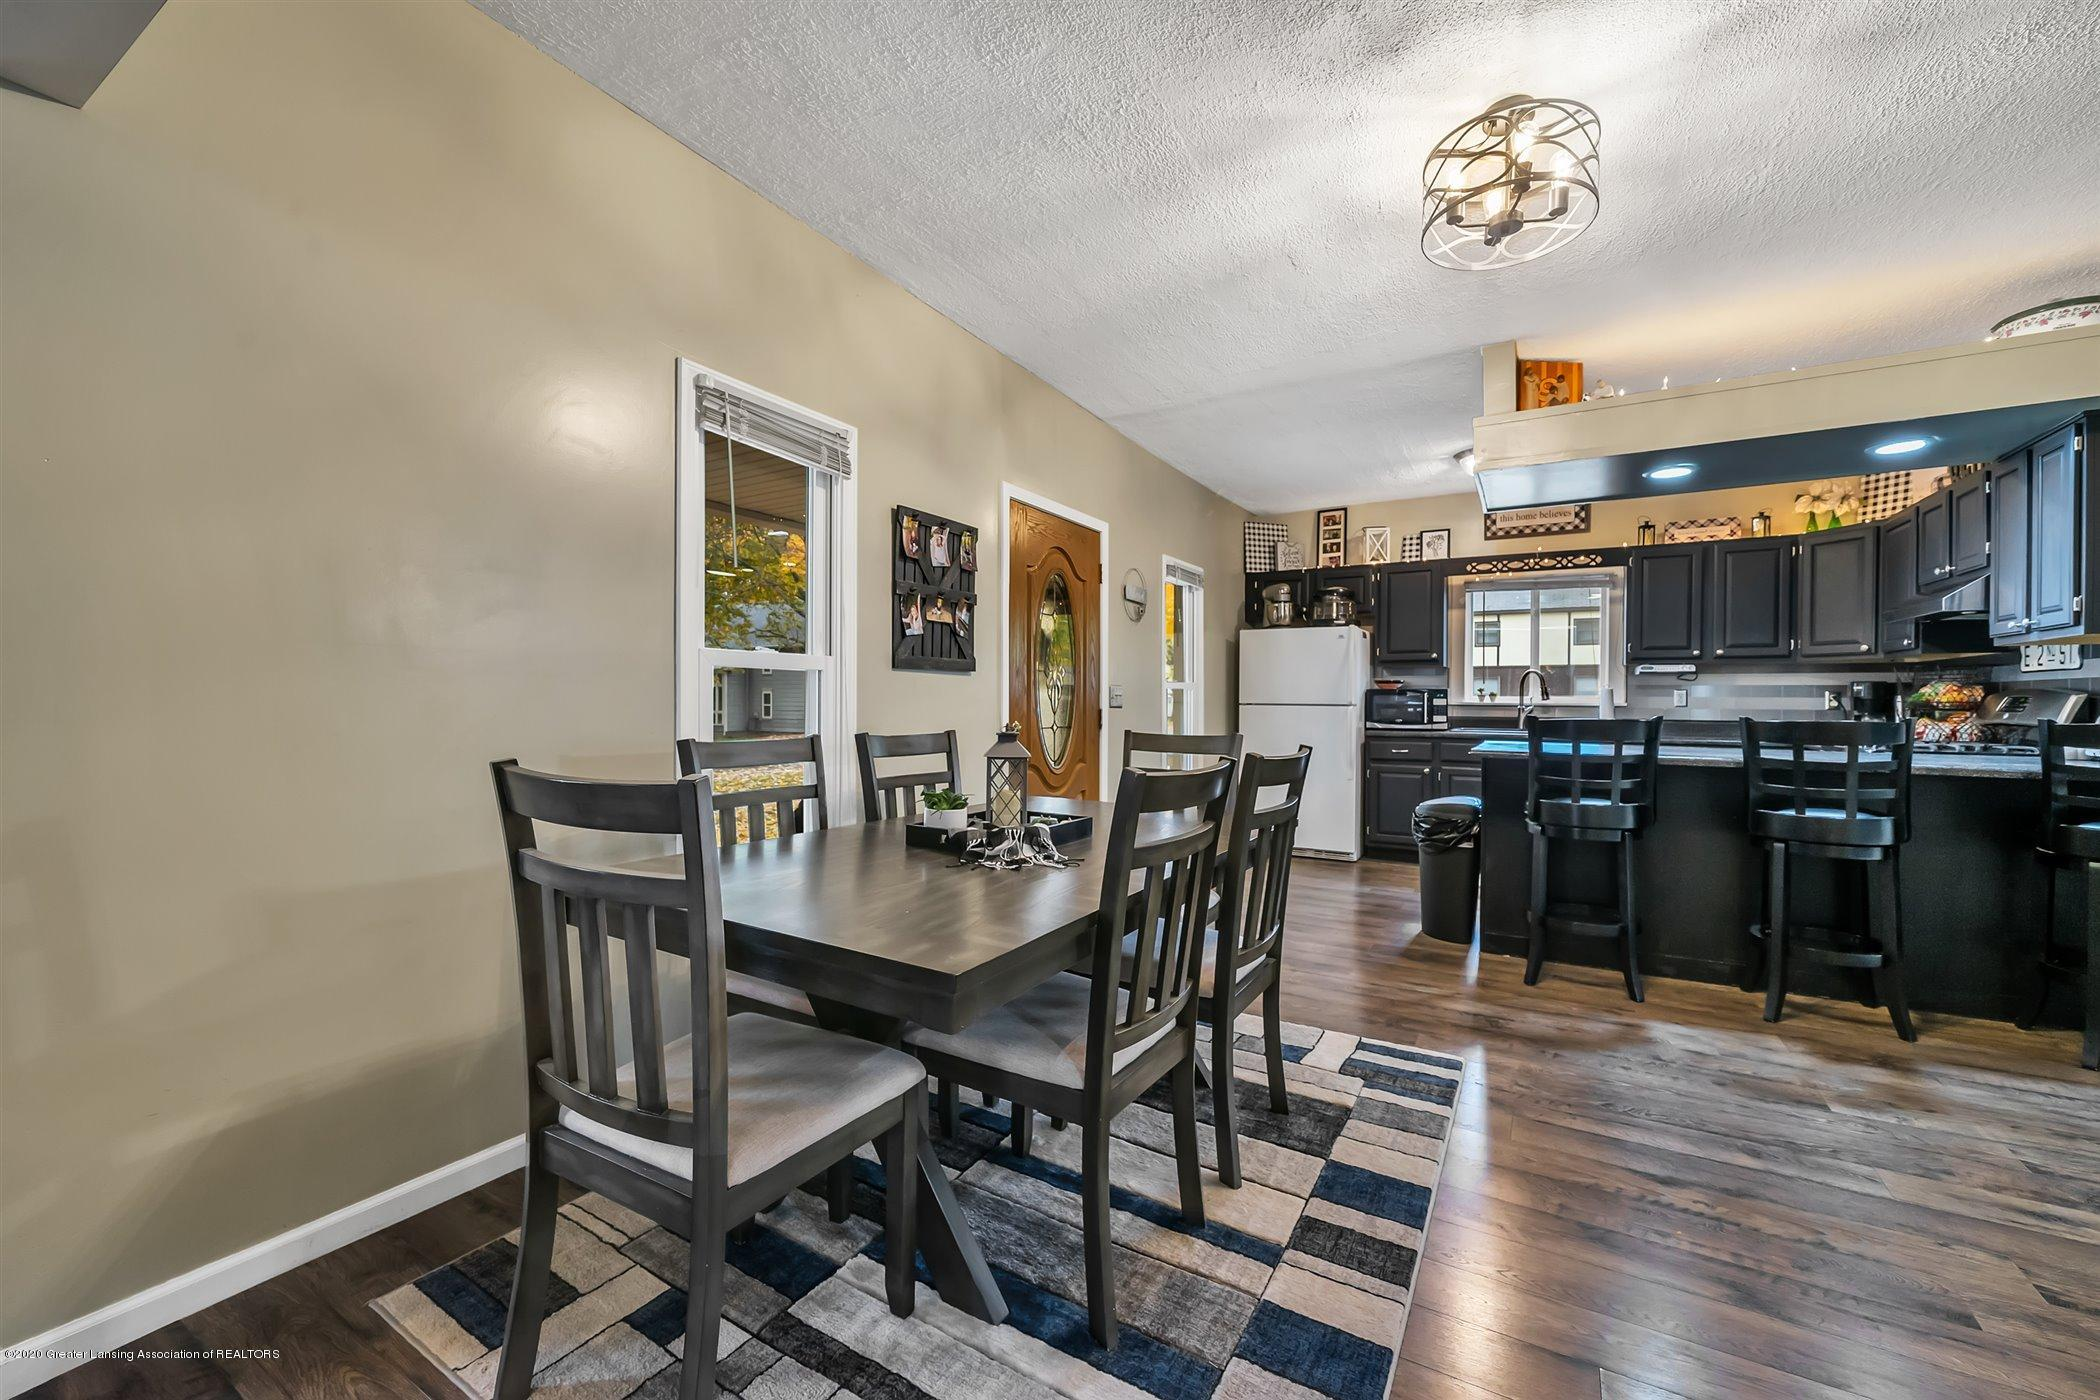 328 E 2nd St - (6) MAIN FLOOR Dining and Kitchen - 7